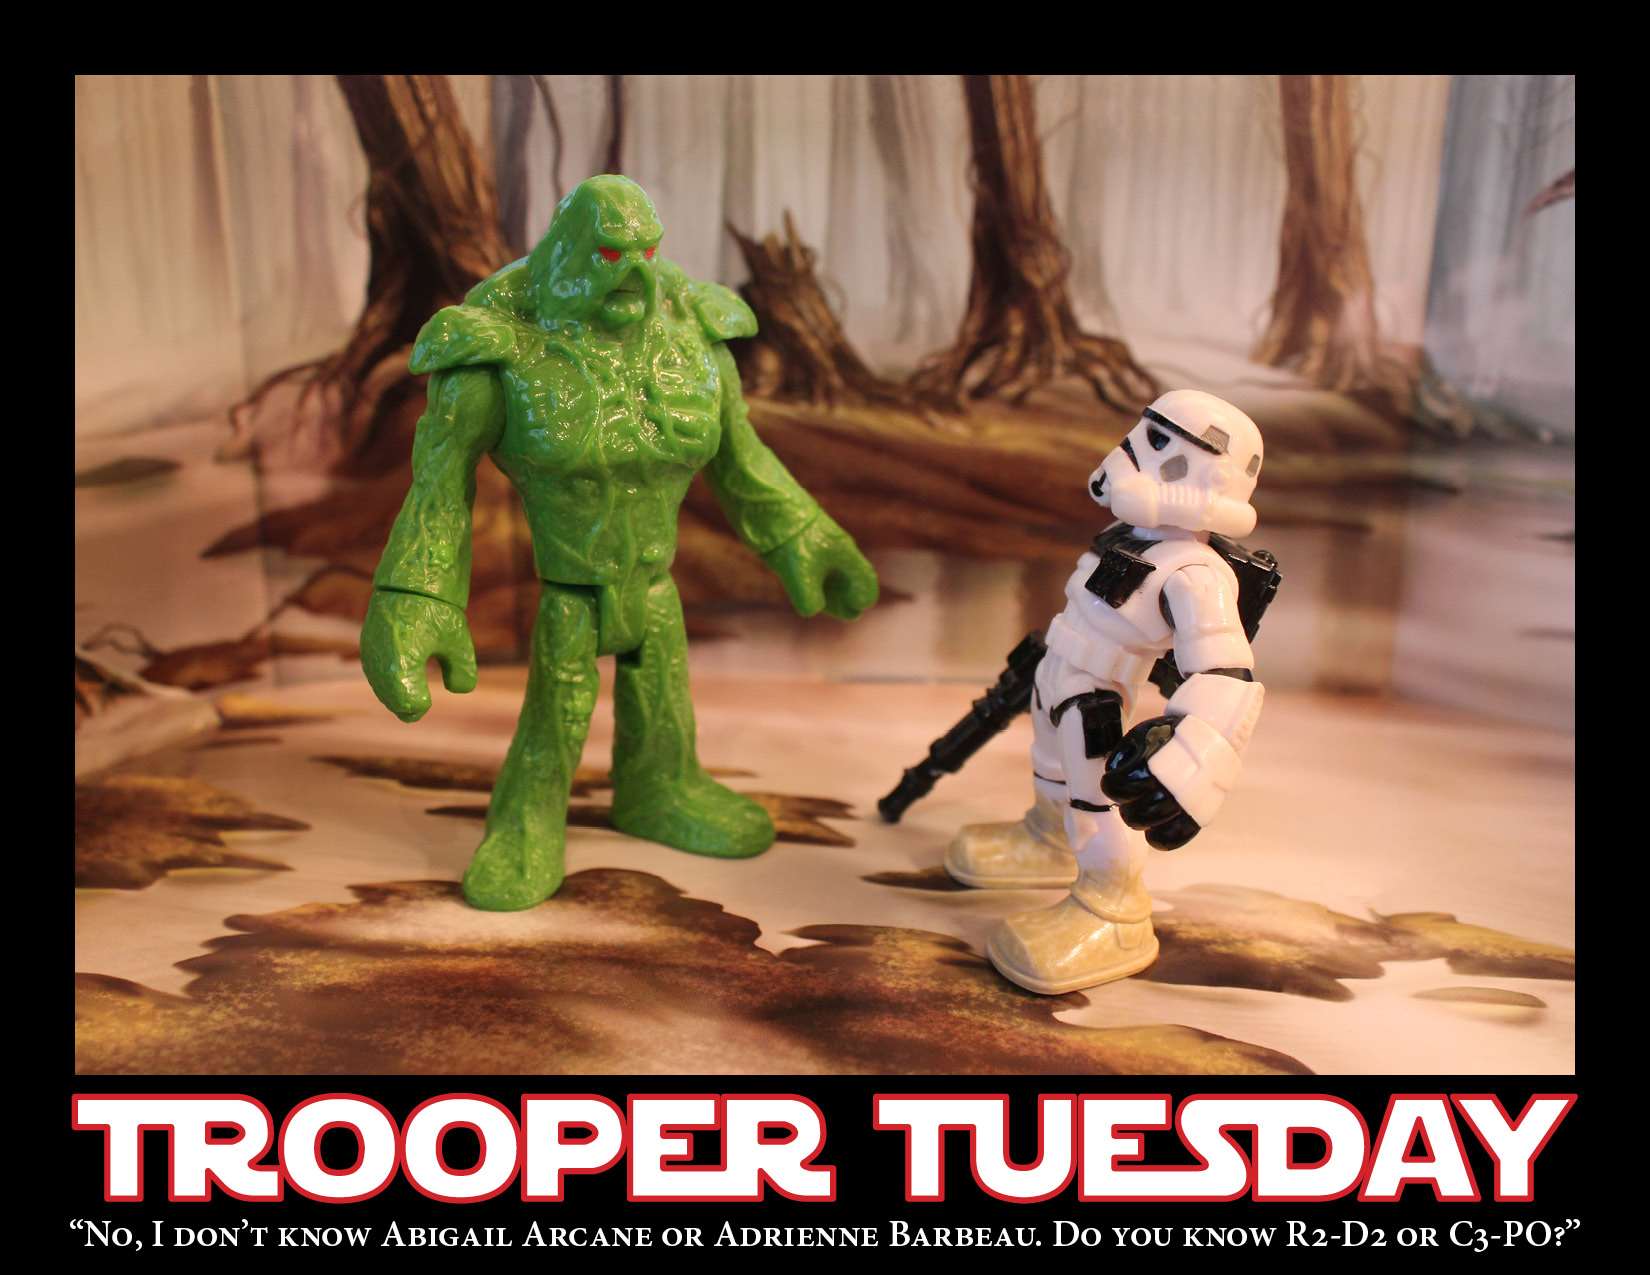 A Sandtrooper and the Swamp Thing stand in the Dagobah swamp discussing missing persons.